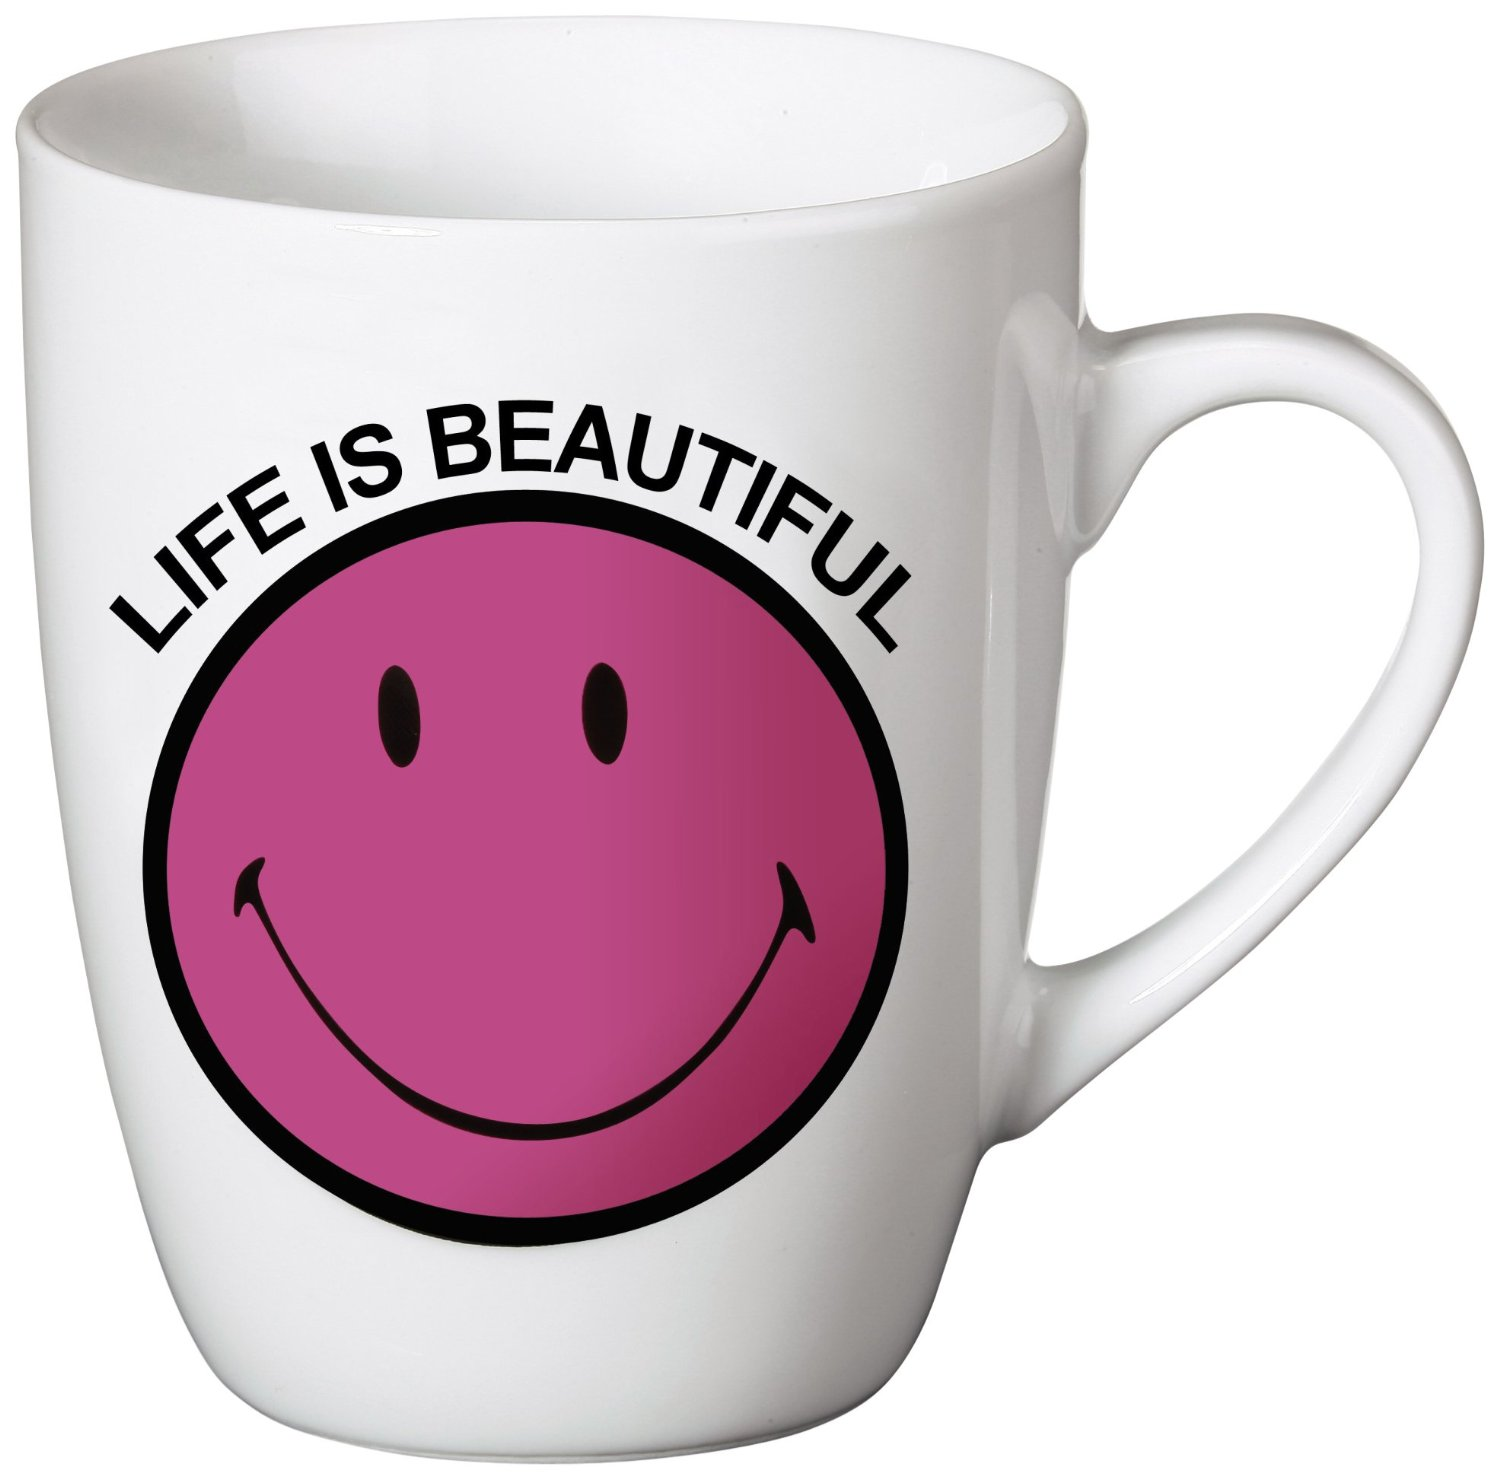 .amazon tazza rosa di Nici Life is beautiful - Tazza con scritta e smile in porcellana